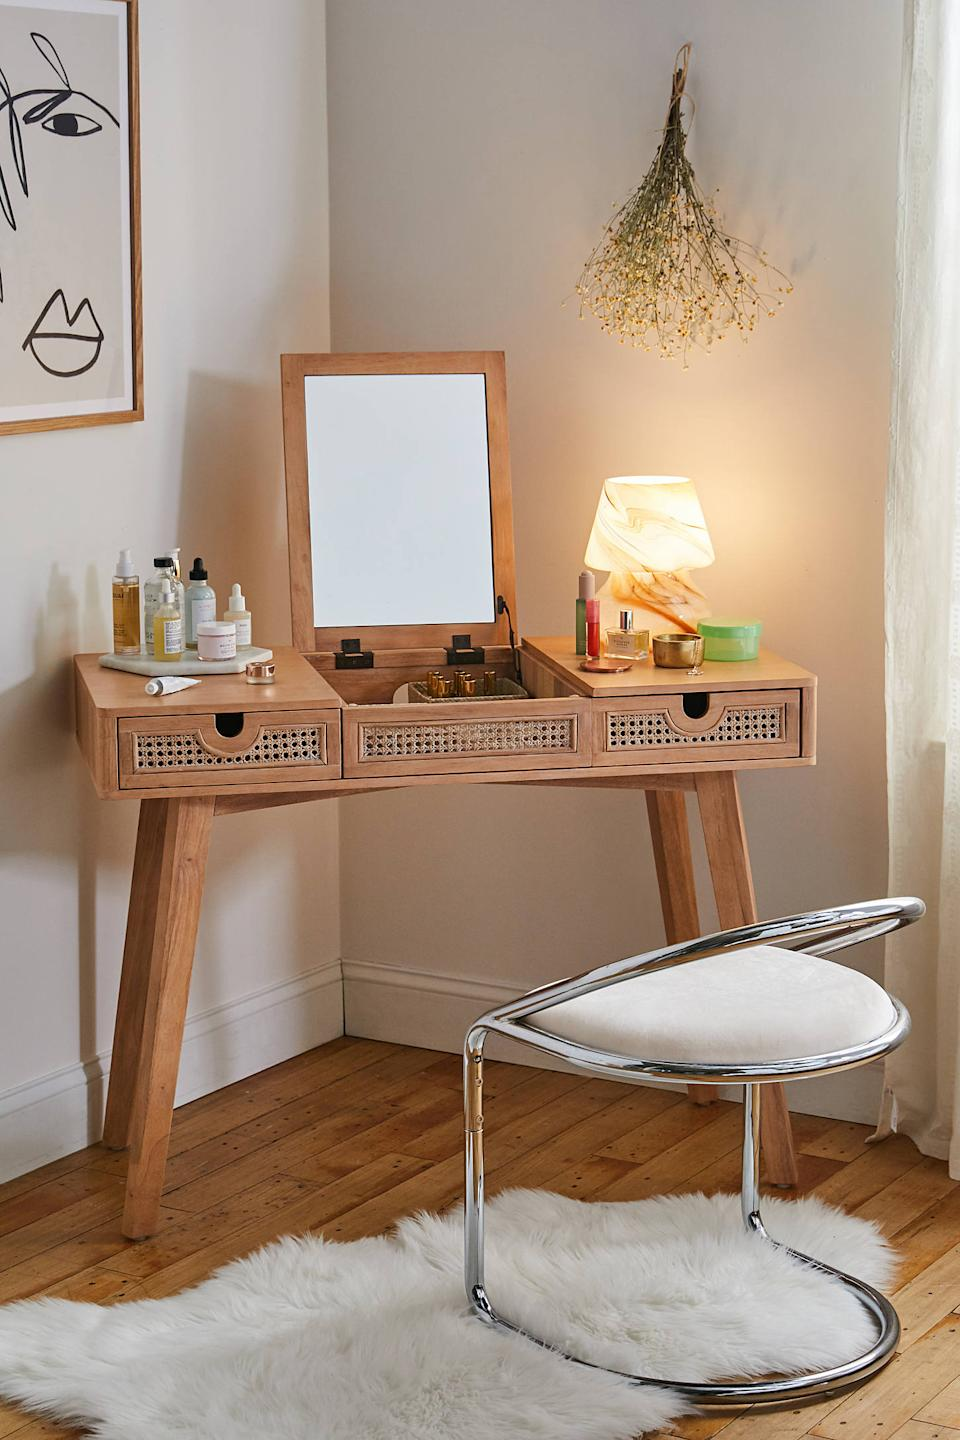 "This boho-chic-style vanity is ready to pop up for your morning beauty-routine needs and fold down to turn itself into a 9-5 workstation star. <br><br><strong><em>Shop <a href=""https://www.urbanoutfitters.com/shop/marte-vanity"" rel=""nofollow noopener"" target=""_blank"" data-ylk=""slk:Urban Outfitters"" class=""link rapid-noclick-resp"">Urban Outfitters</a></em></strong> <br><br><strong>Urban Outfitters</strong> Marte Vanity, $, available at <a href=""https://go.skimresources.com/?id=30283X879131&url=https%3A%2F%2Fwww.urbanoutfitters.com%2Fshop%2Fmarte-vanity"" rel=""nofollow noopener"" target=""_blank"" data-ylk=""slk:Urban Outfitters"" class=""link rapid-noclick-resp"">Urban Outfitters</a>"